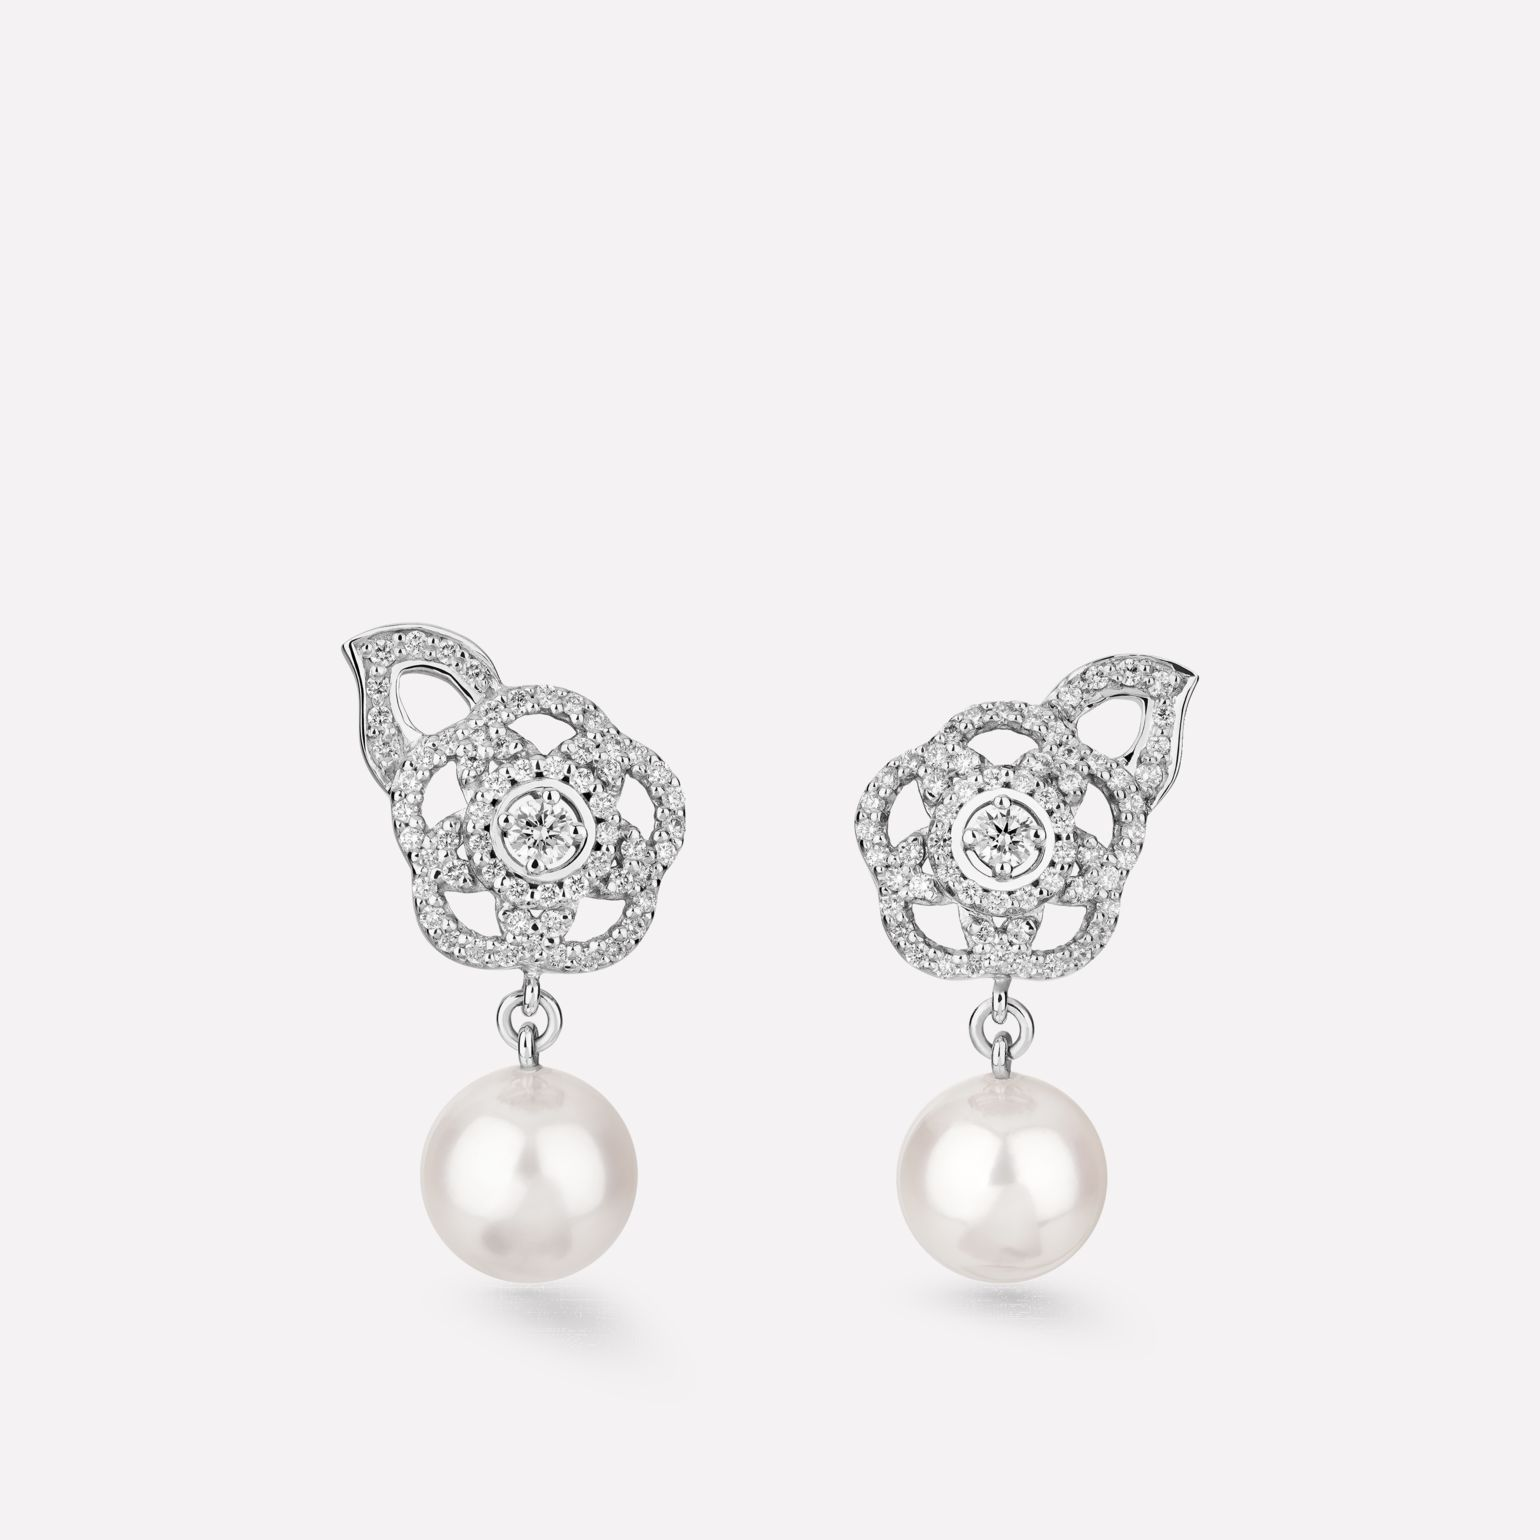 Camélia earrings Camélia Brodé earrings in 18K white gold, diamonds, center diamonds and cultured pearls